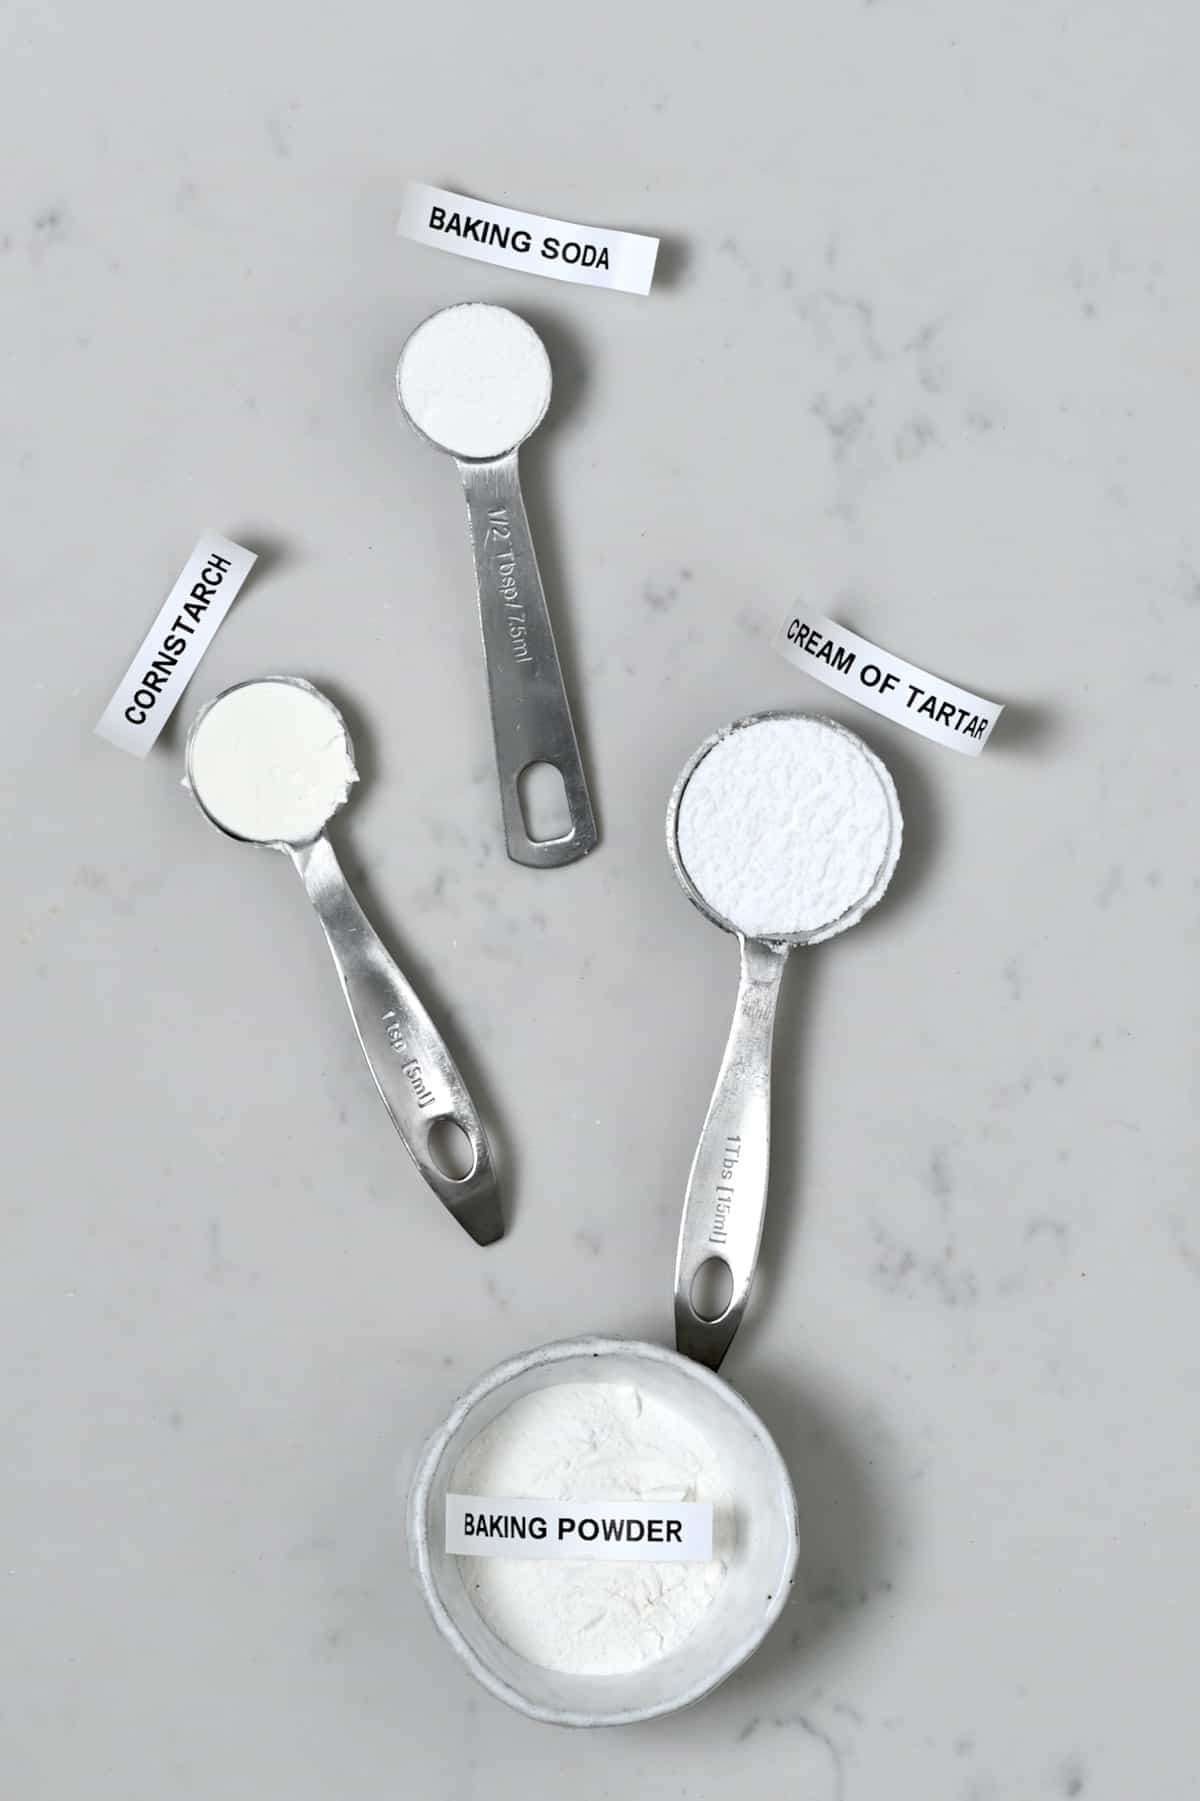 Measuring spoons with baking soda and cream of tartar